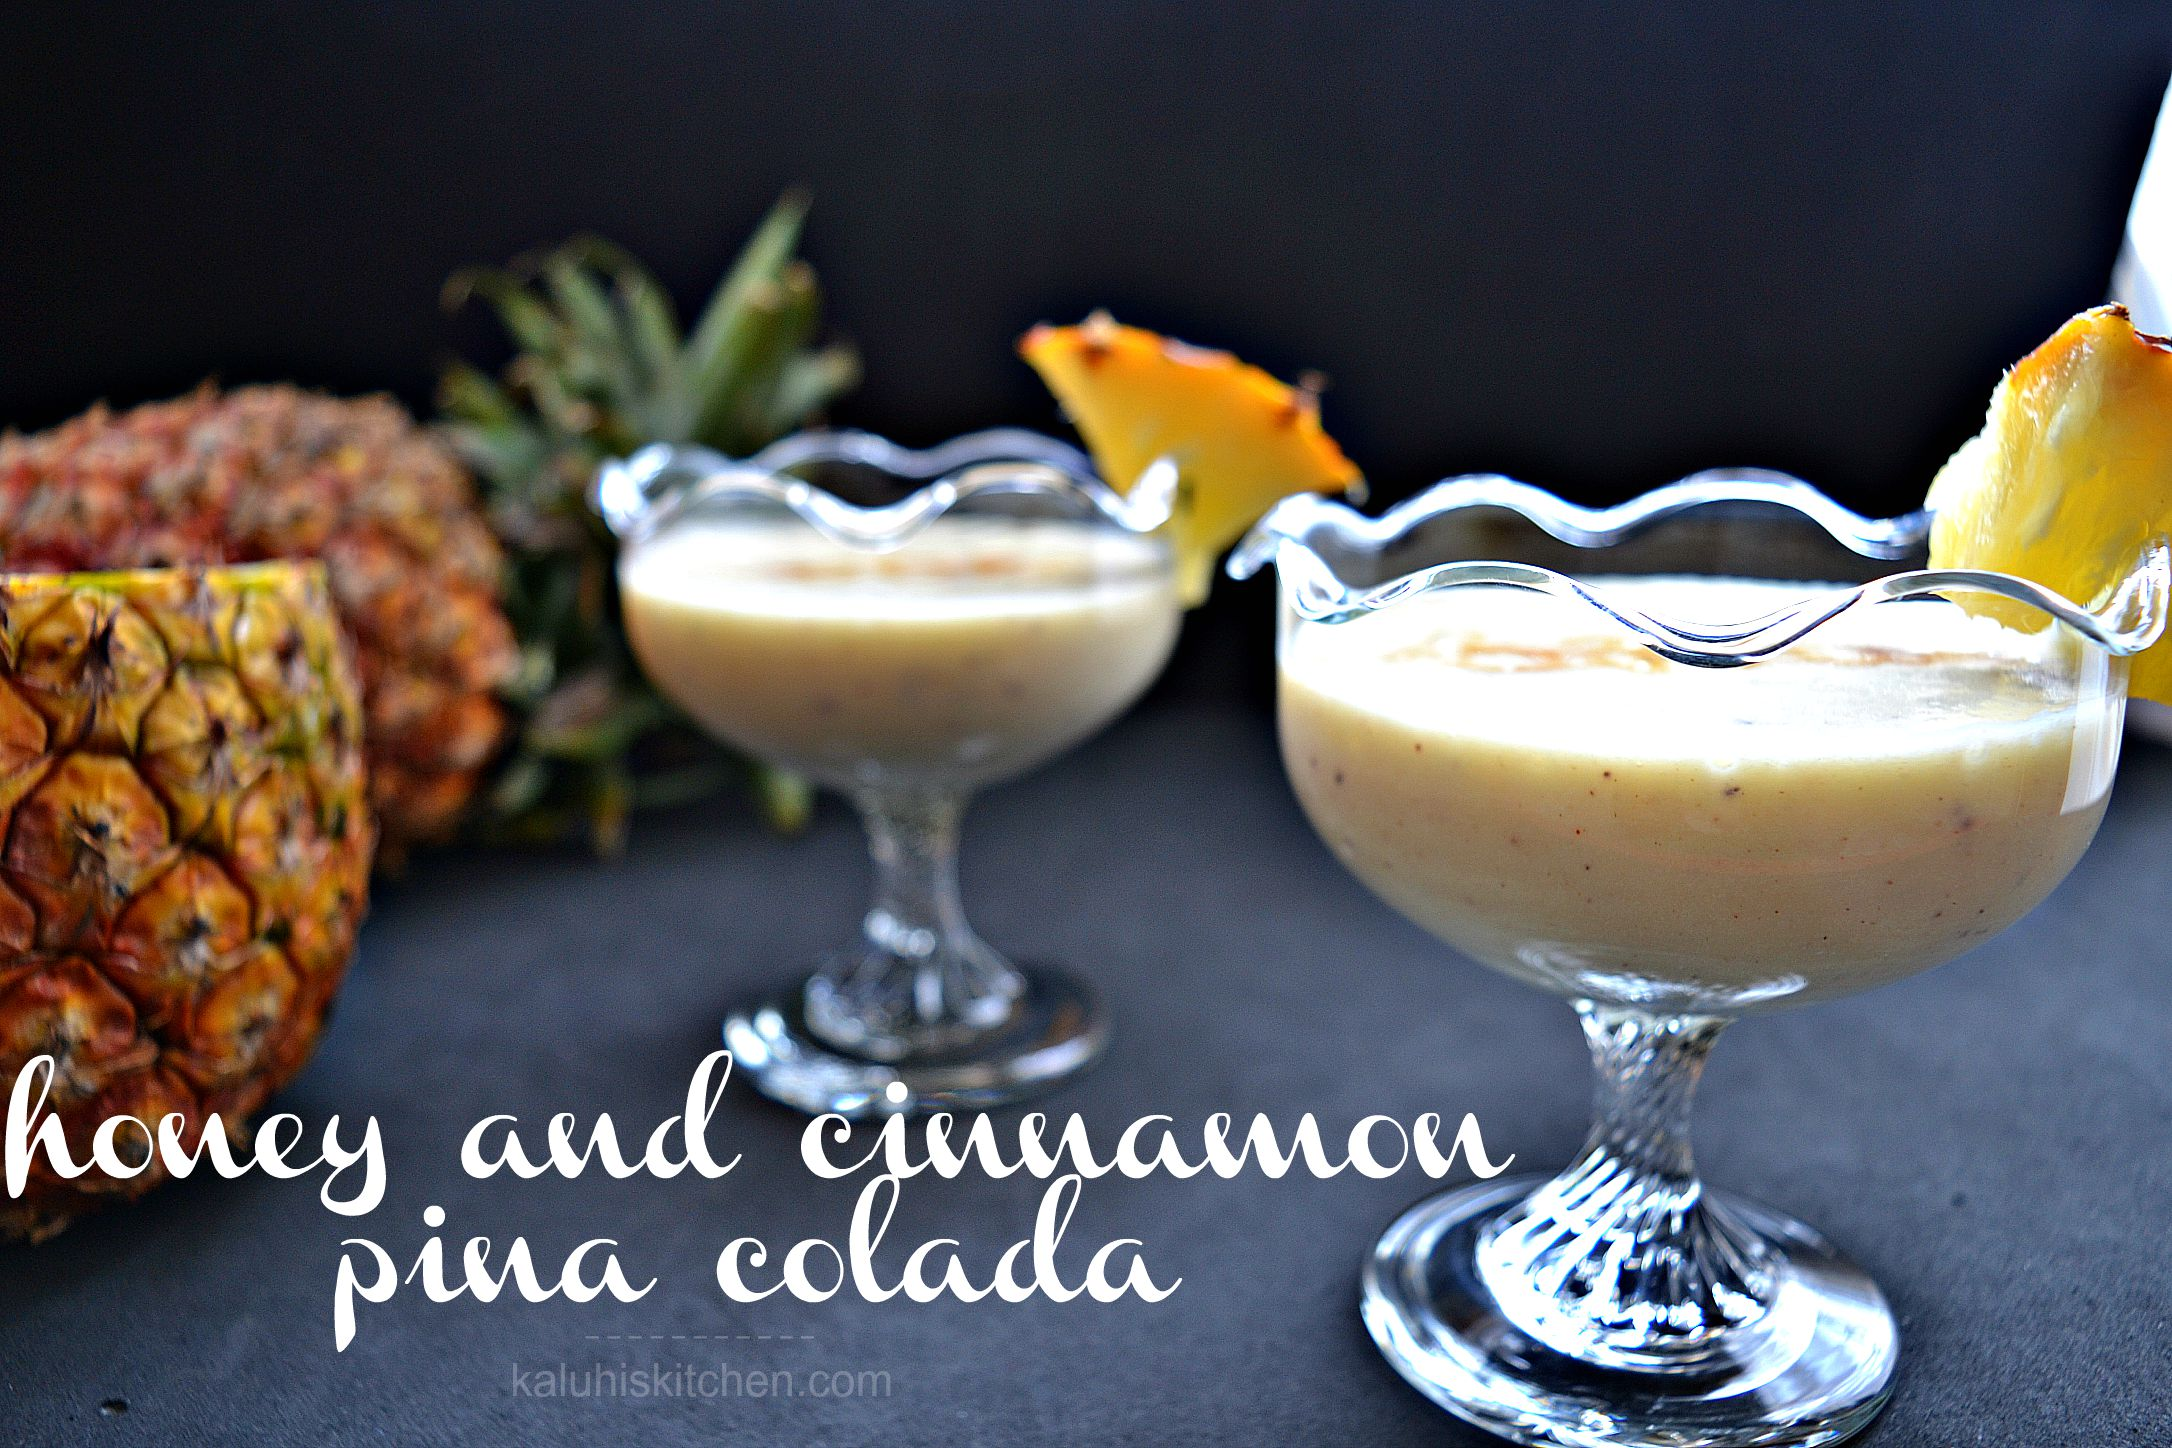 honey and cinnamon pina colada by kaluhi adagala of kenyan food blog kaluhiskitchen.com_how to make pina colada_kaluhiskitchen.com